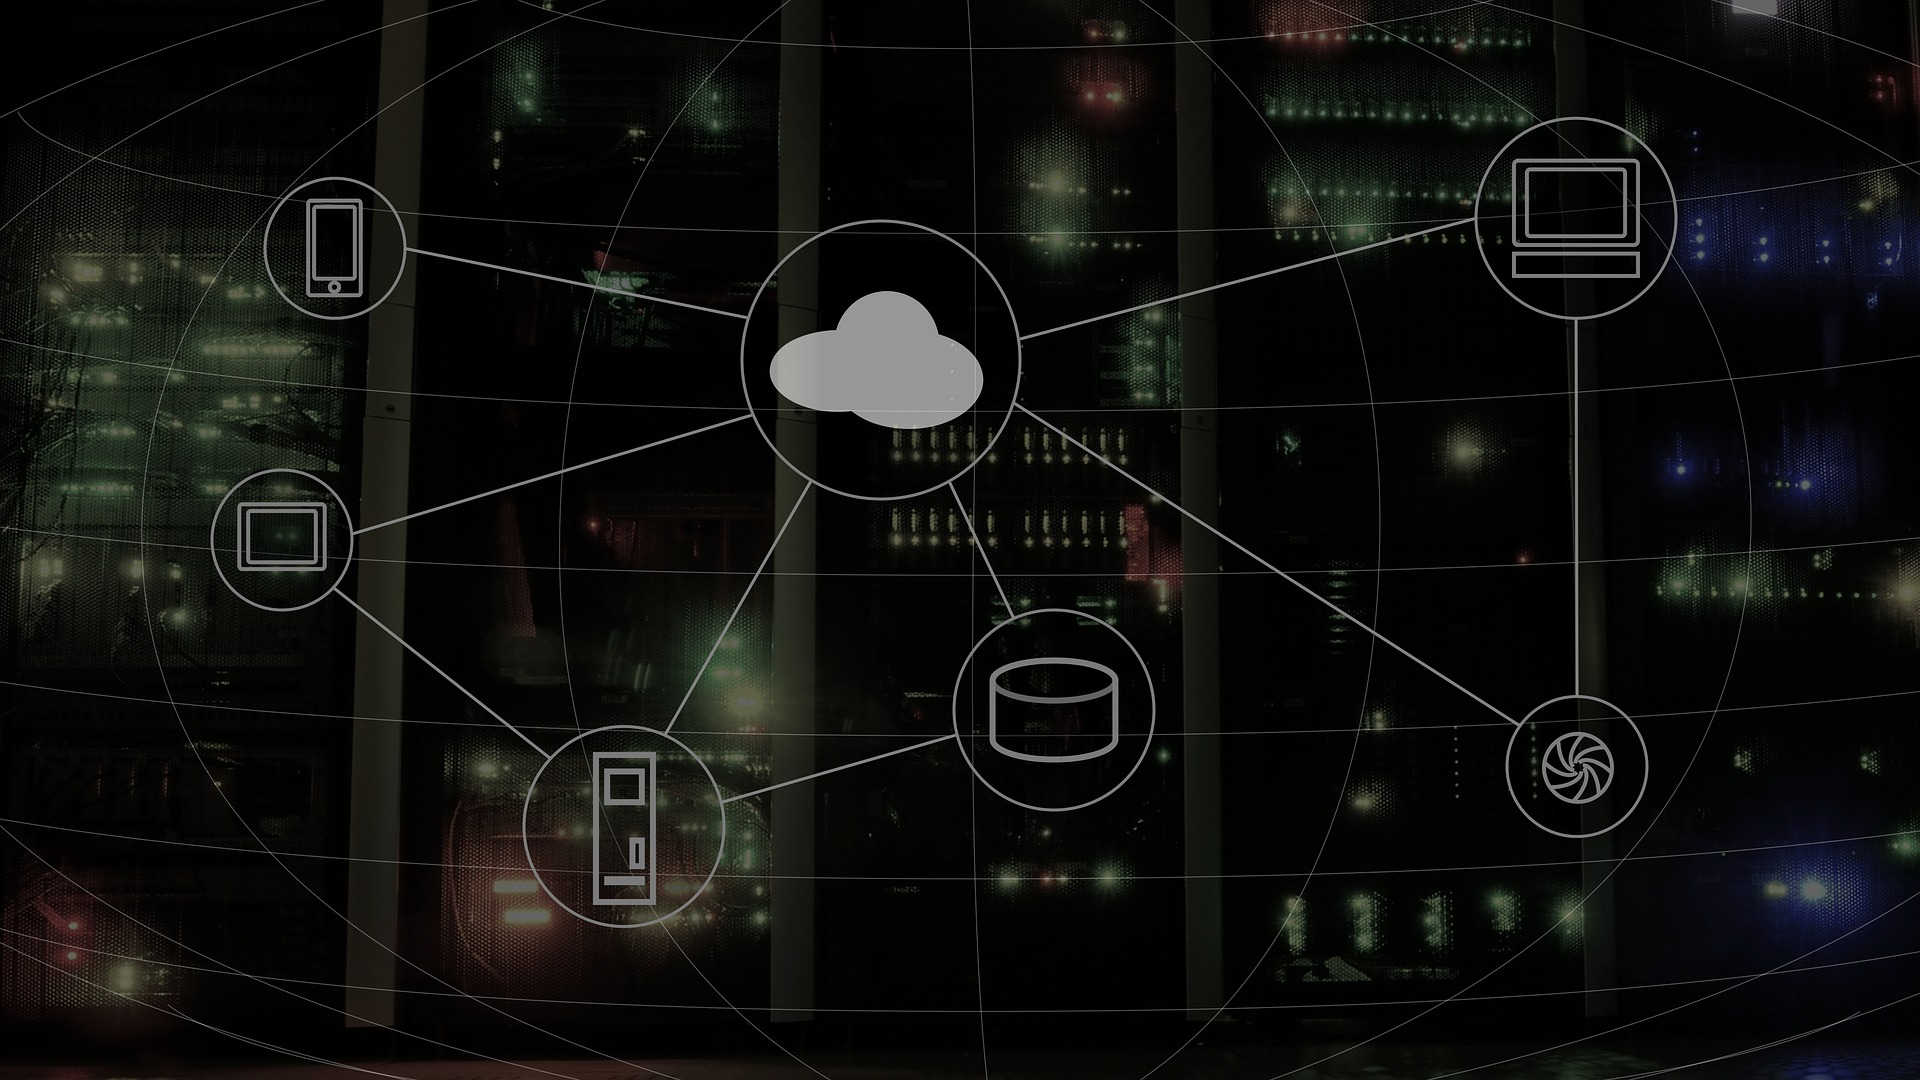 Protecting patients records, maintaining compliance, and transforming healthcare in the cloud